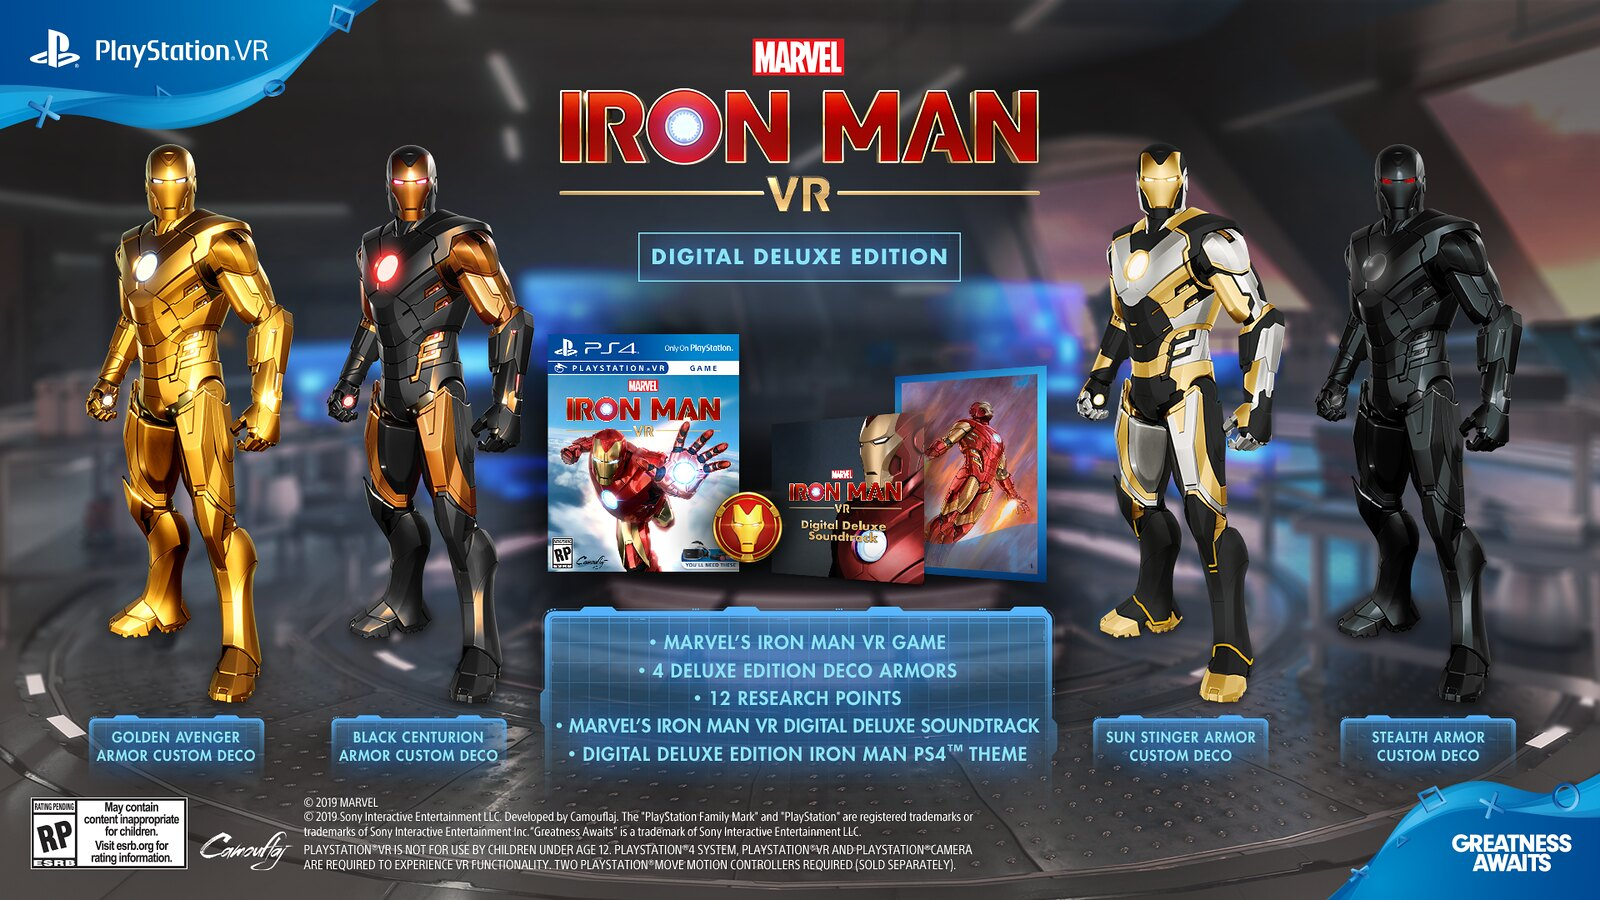 Ps4 Vr Games 2020.Marvel S Iron Man Vr Game Releases On February 28 2020